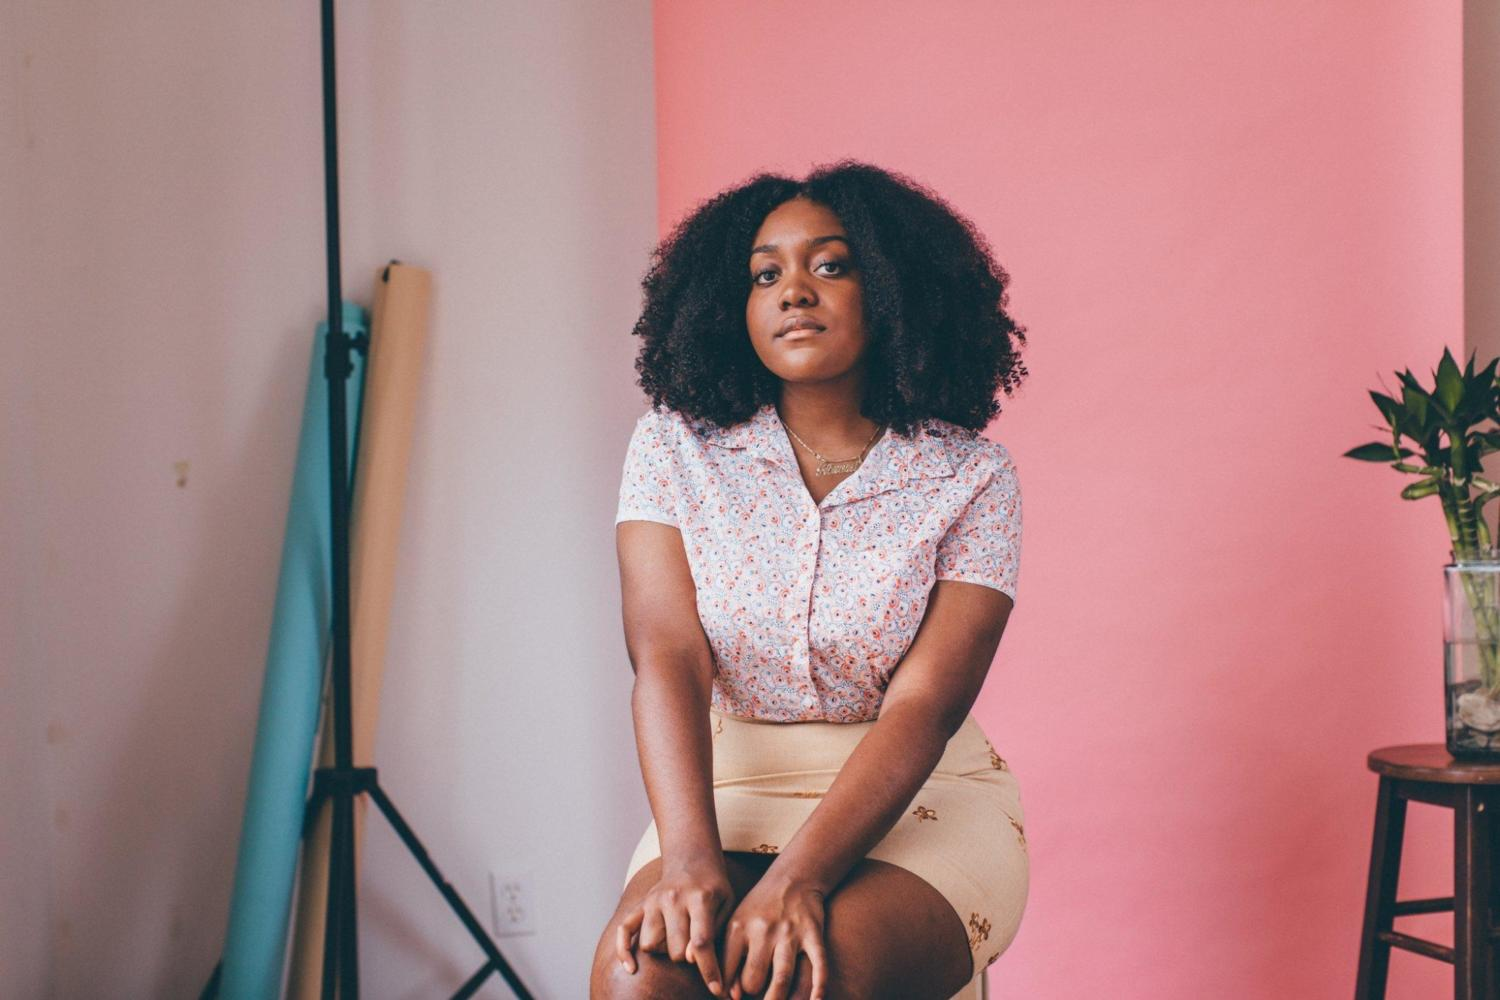 Tracks: Noname, The Killers, IDLES and more